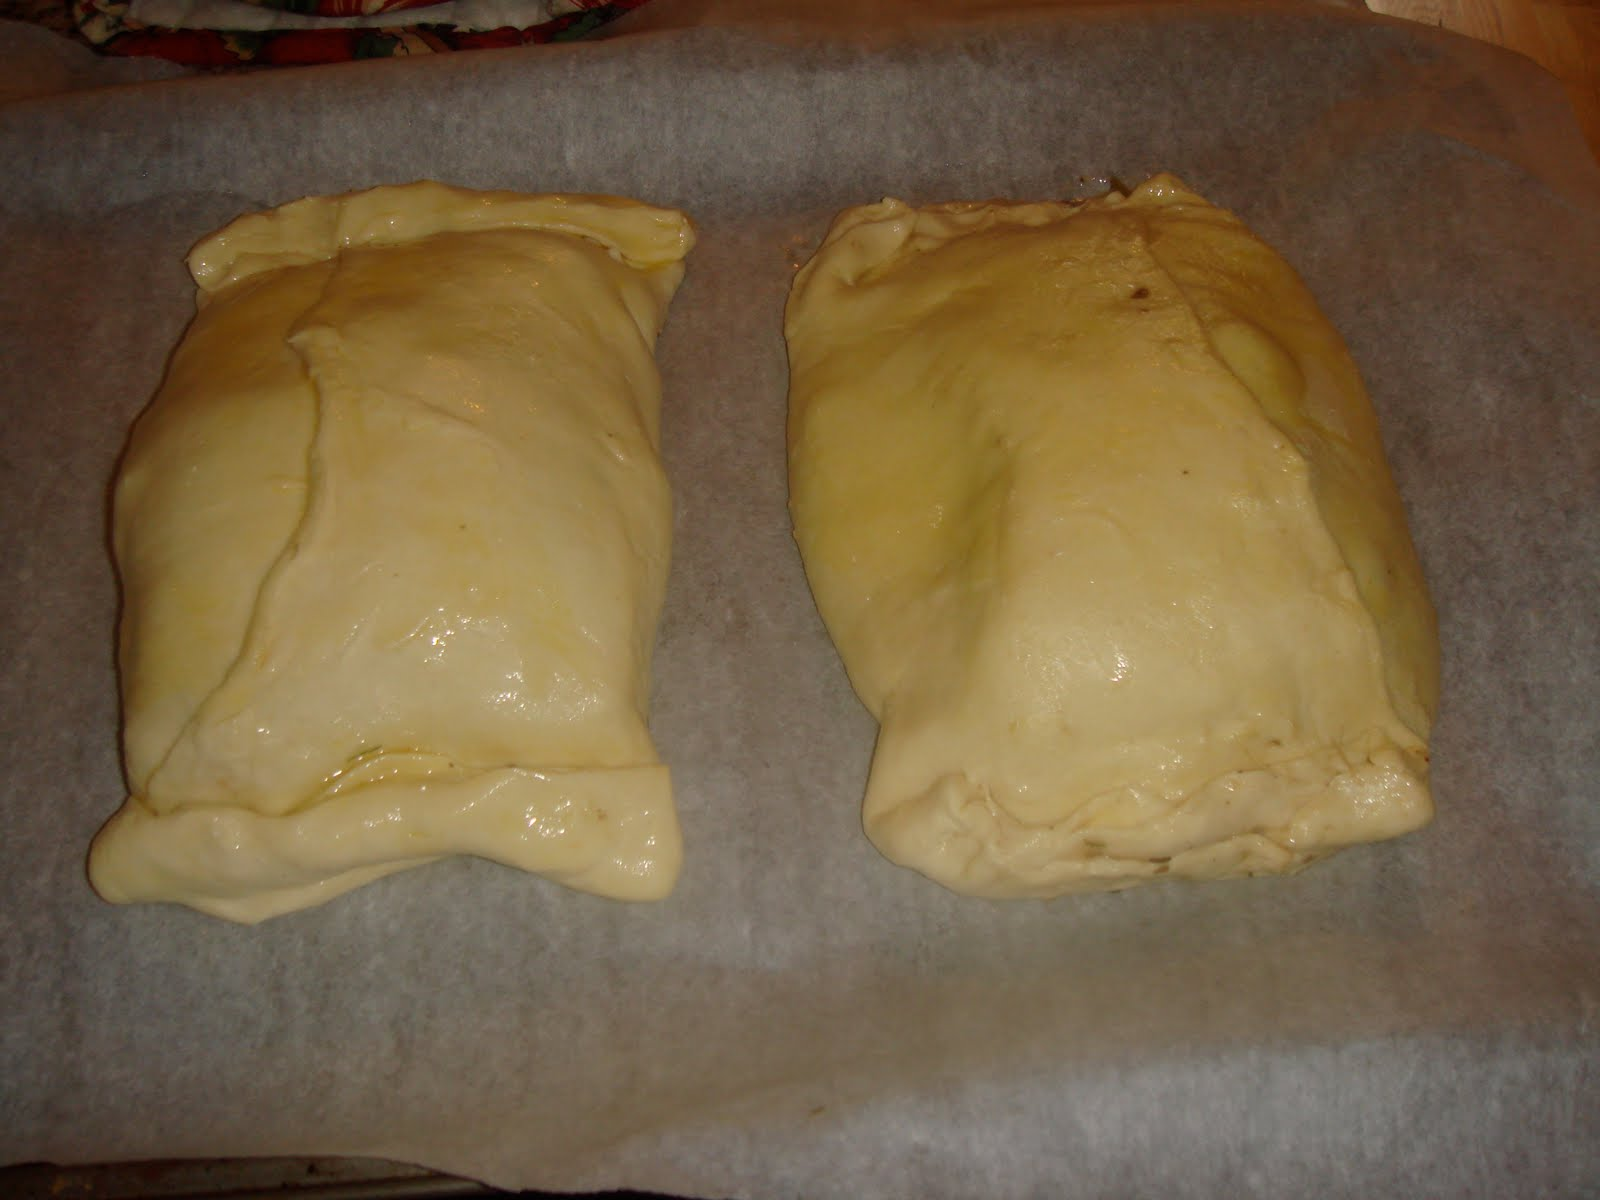 8 Bake In The Oven At 400 Degree's For 2530 Minutes